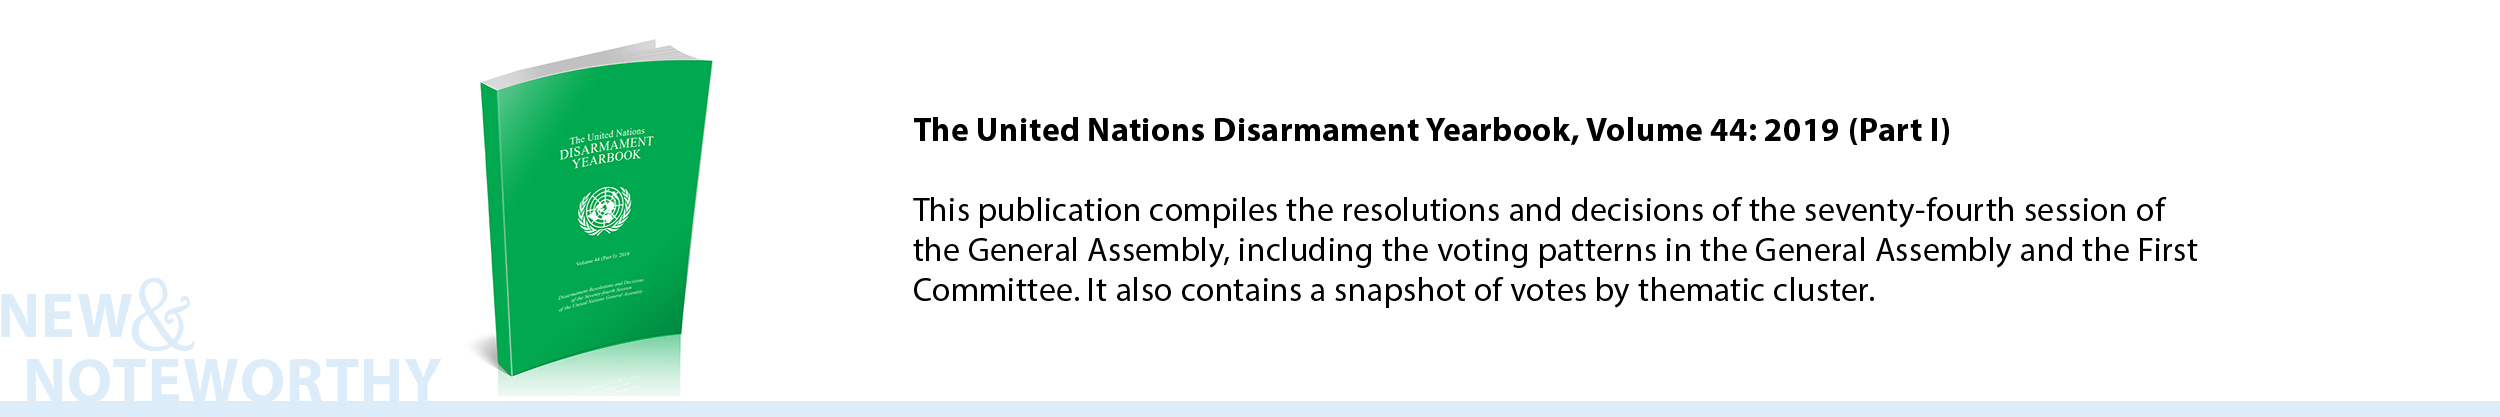 The United Nations Disarmament Yearbook, Volume 43: 2019 (Part I) - This publication compiles the resolutions and decisions of the seventy-fourth session of the General Assembly, including the voting patterns in the General Assembly and the First Committee. It also contains a snapshot of votes by thematic cluster.